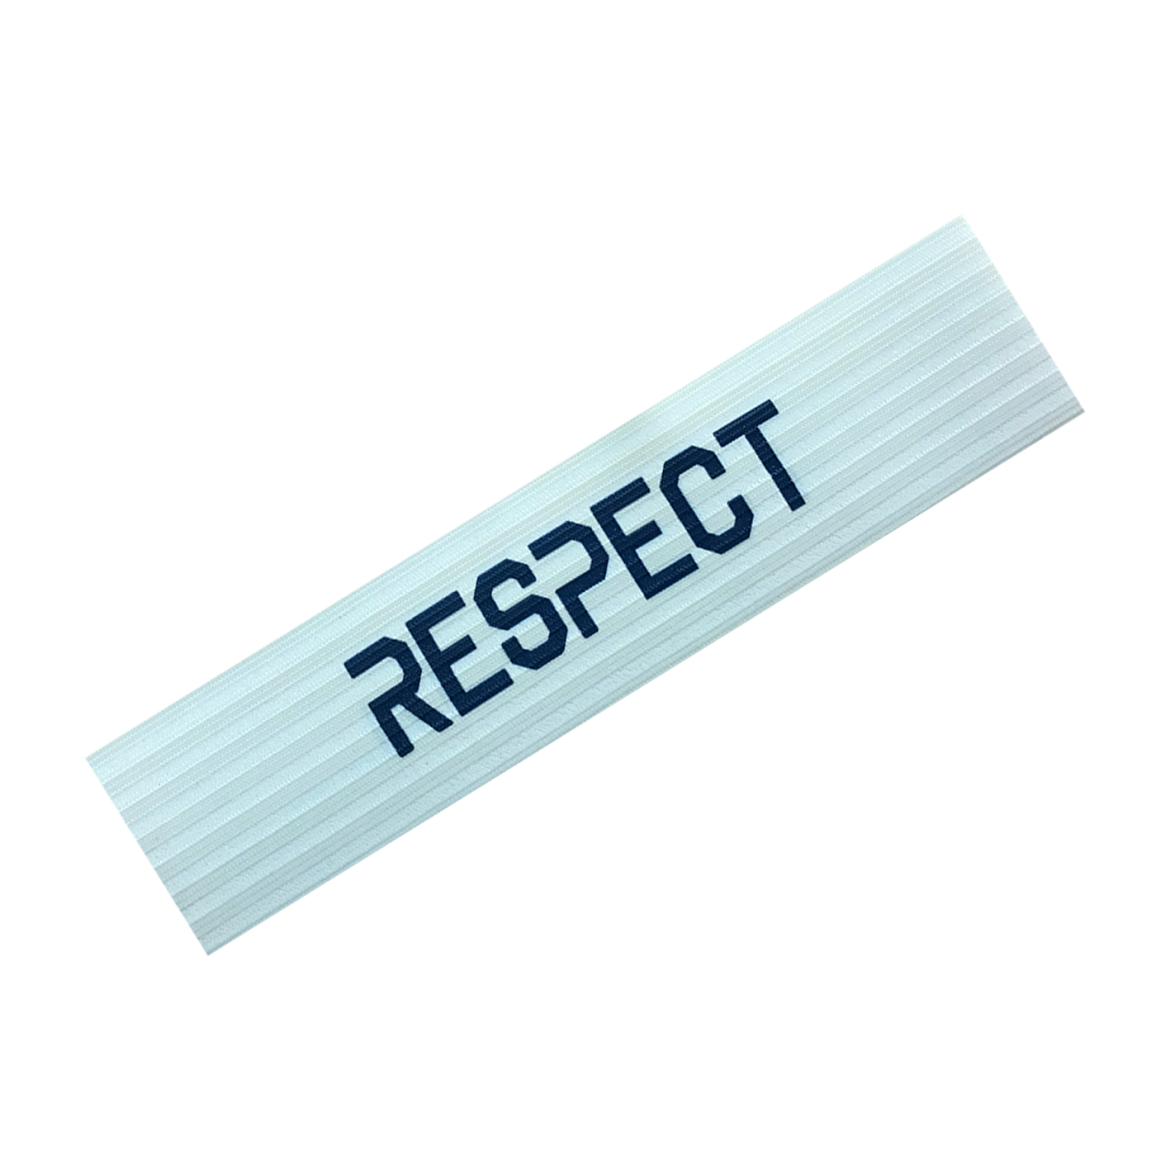 Respect-WIT.png